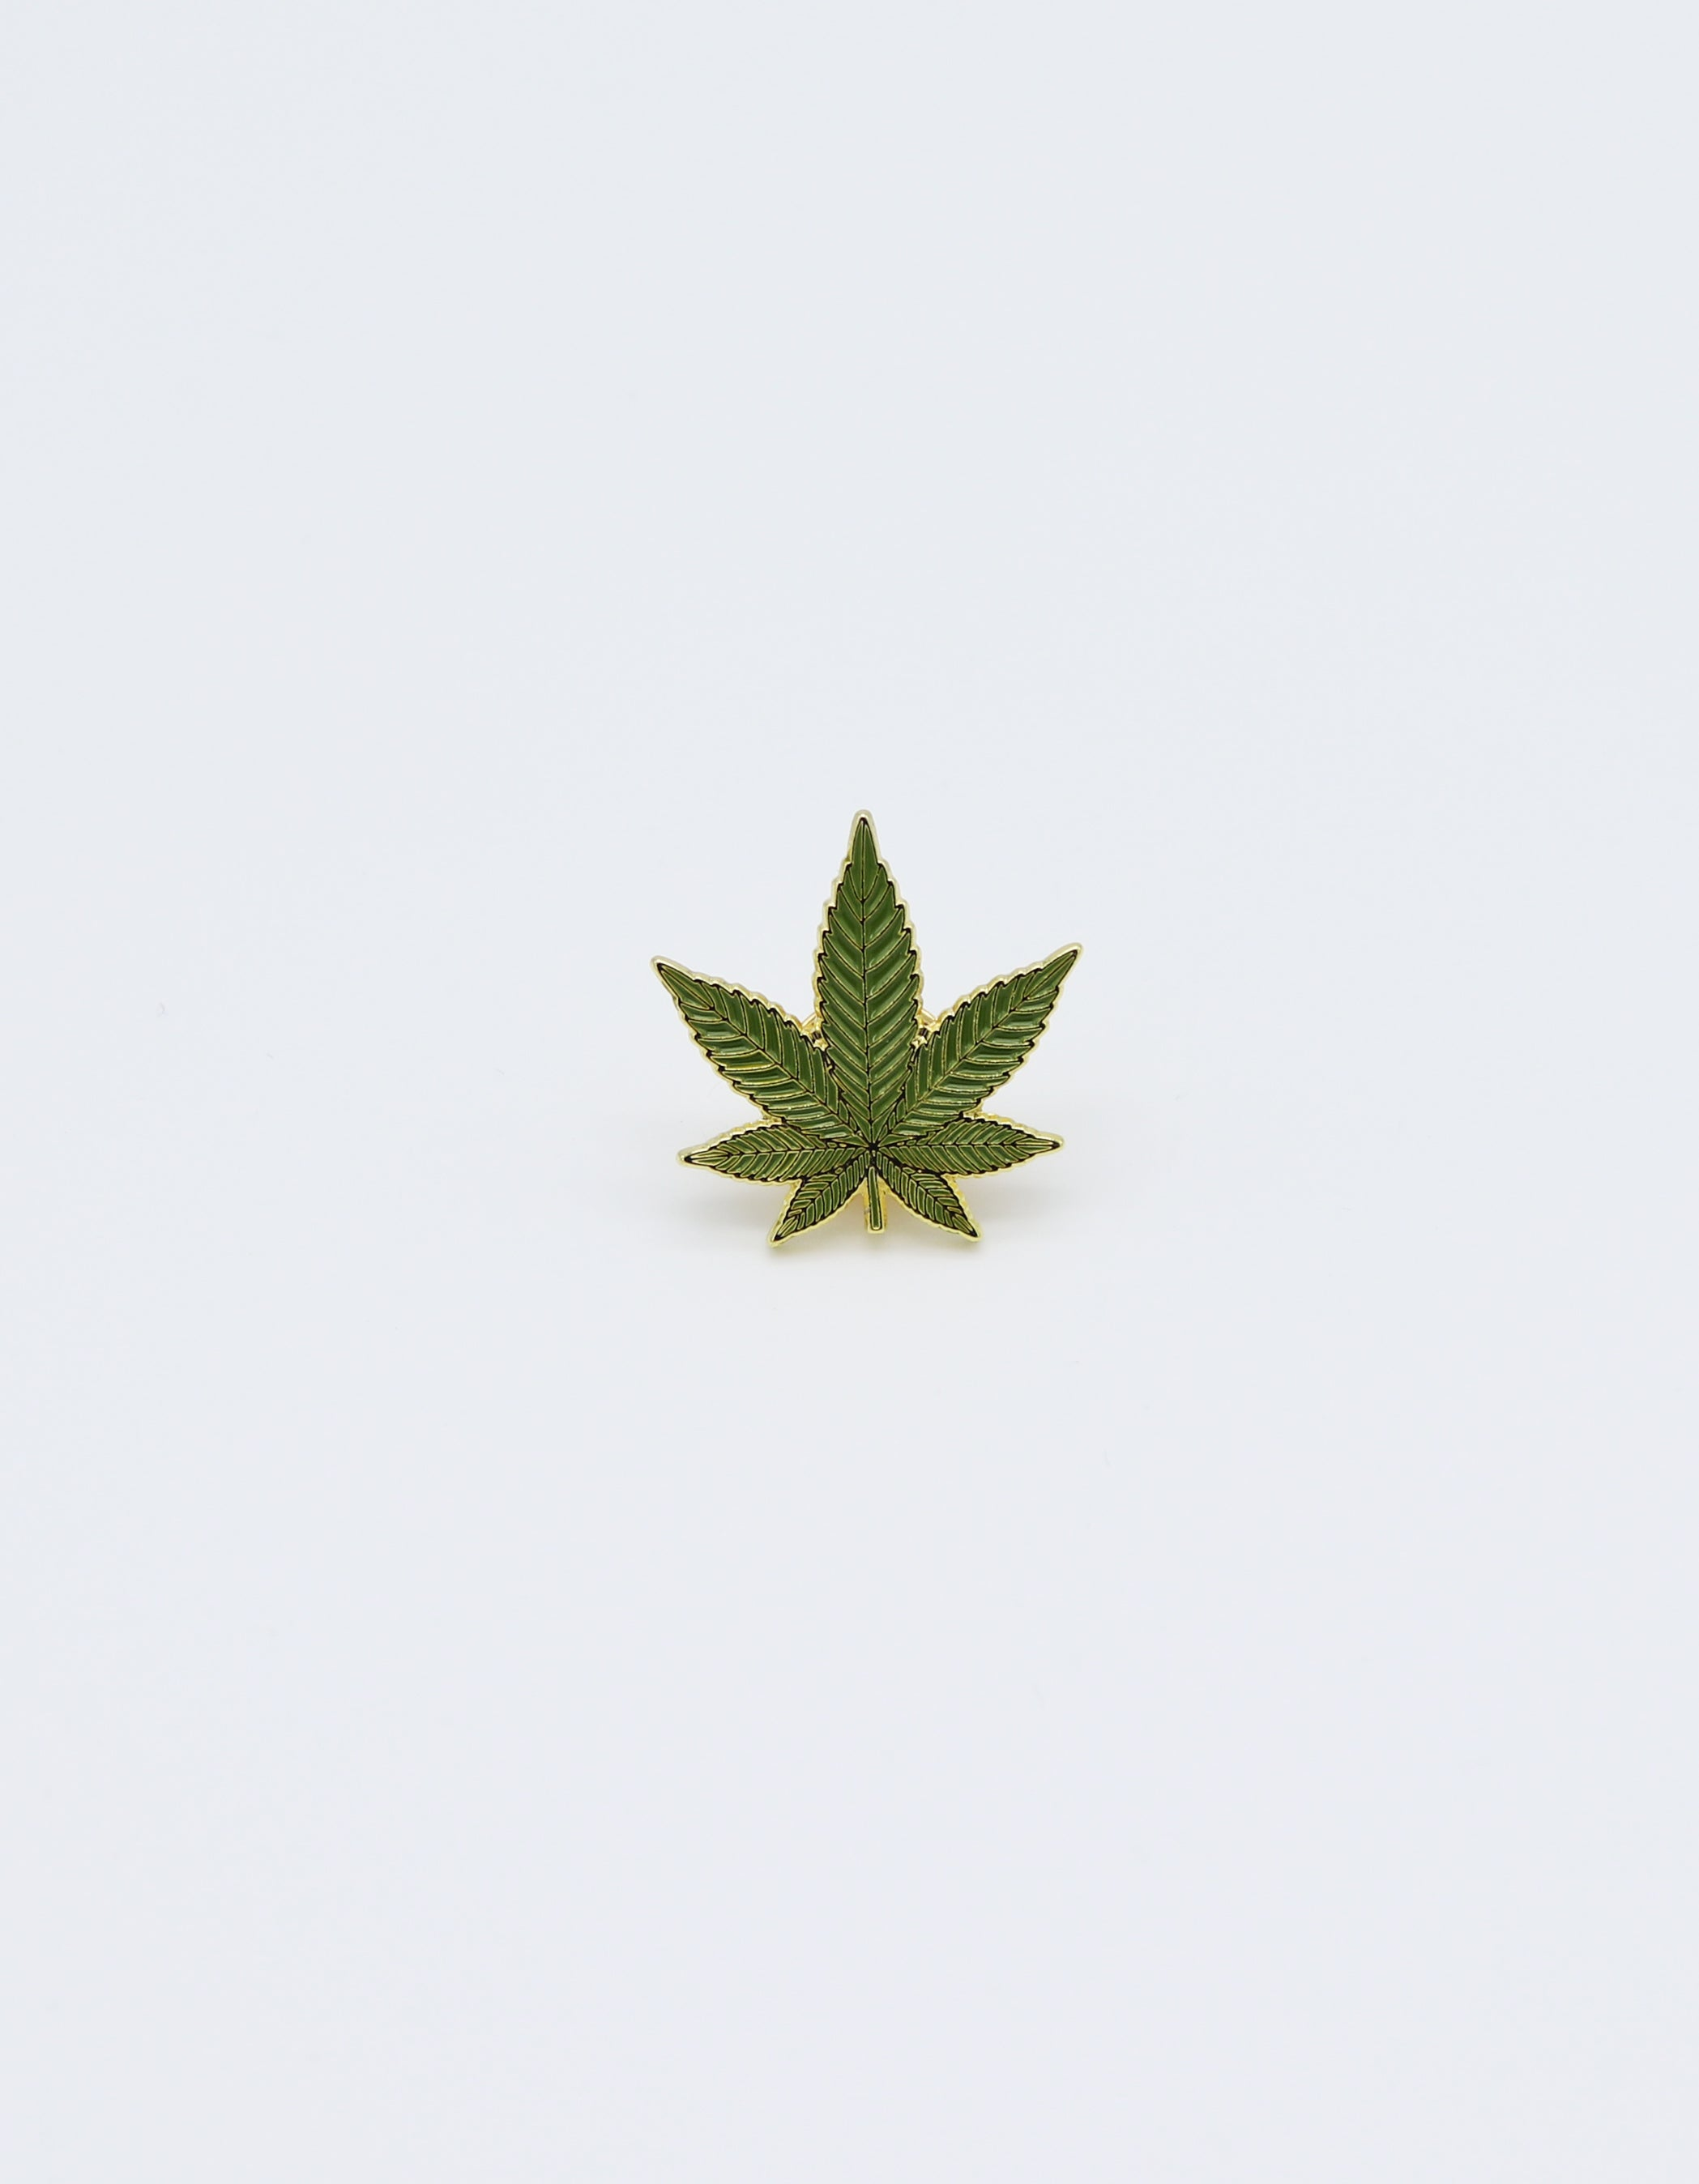 Marijuana leaf pin. Cannabis Leaf  pin green colored with Gold painted Trim. Metal Label Pin accessory.  Beautiful fun accessory that can be placed on a hat, beanie, jacket, backpack or anywhere to elevate your look. Design by local shop SDTrading Co.